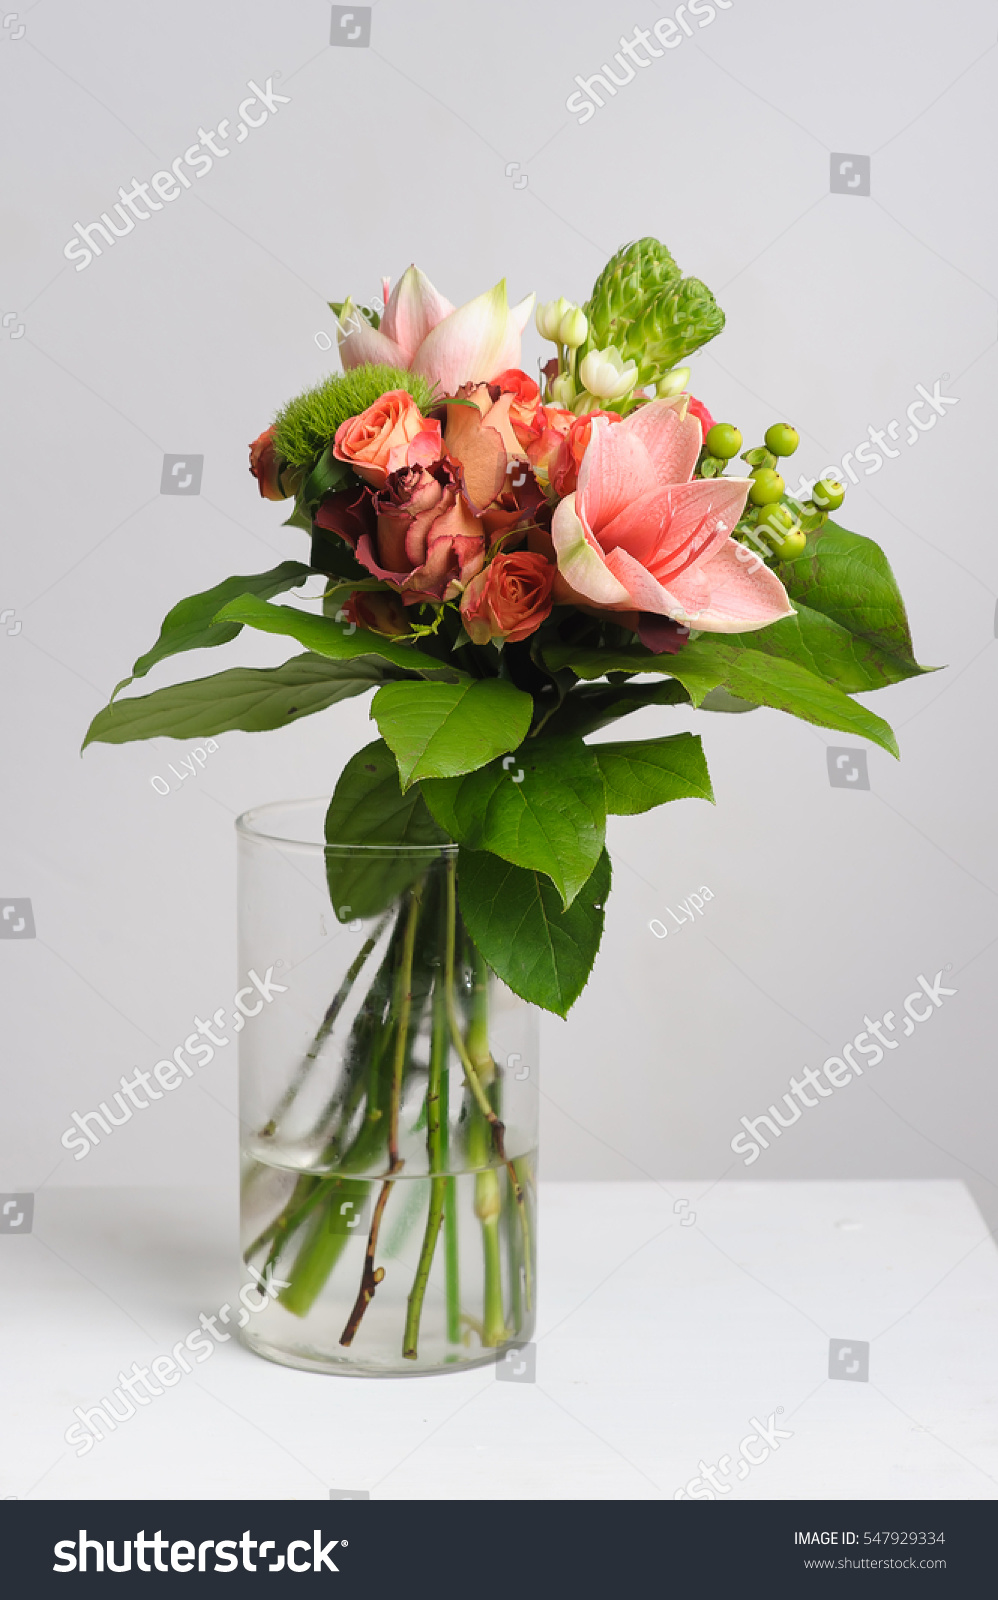 Flower arrangement on table bouquet roses stock photo image flower arrangement on table bouquet of roses in vase white background izmirmasajfo